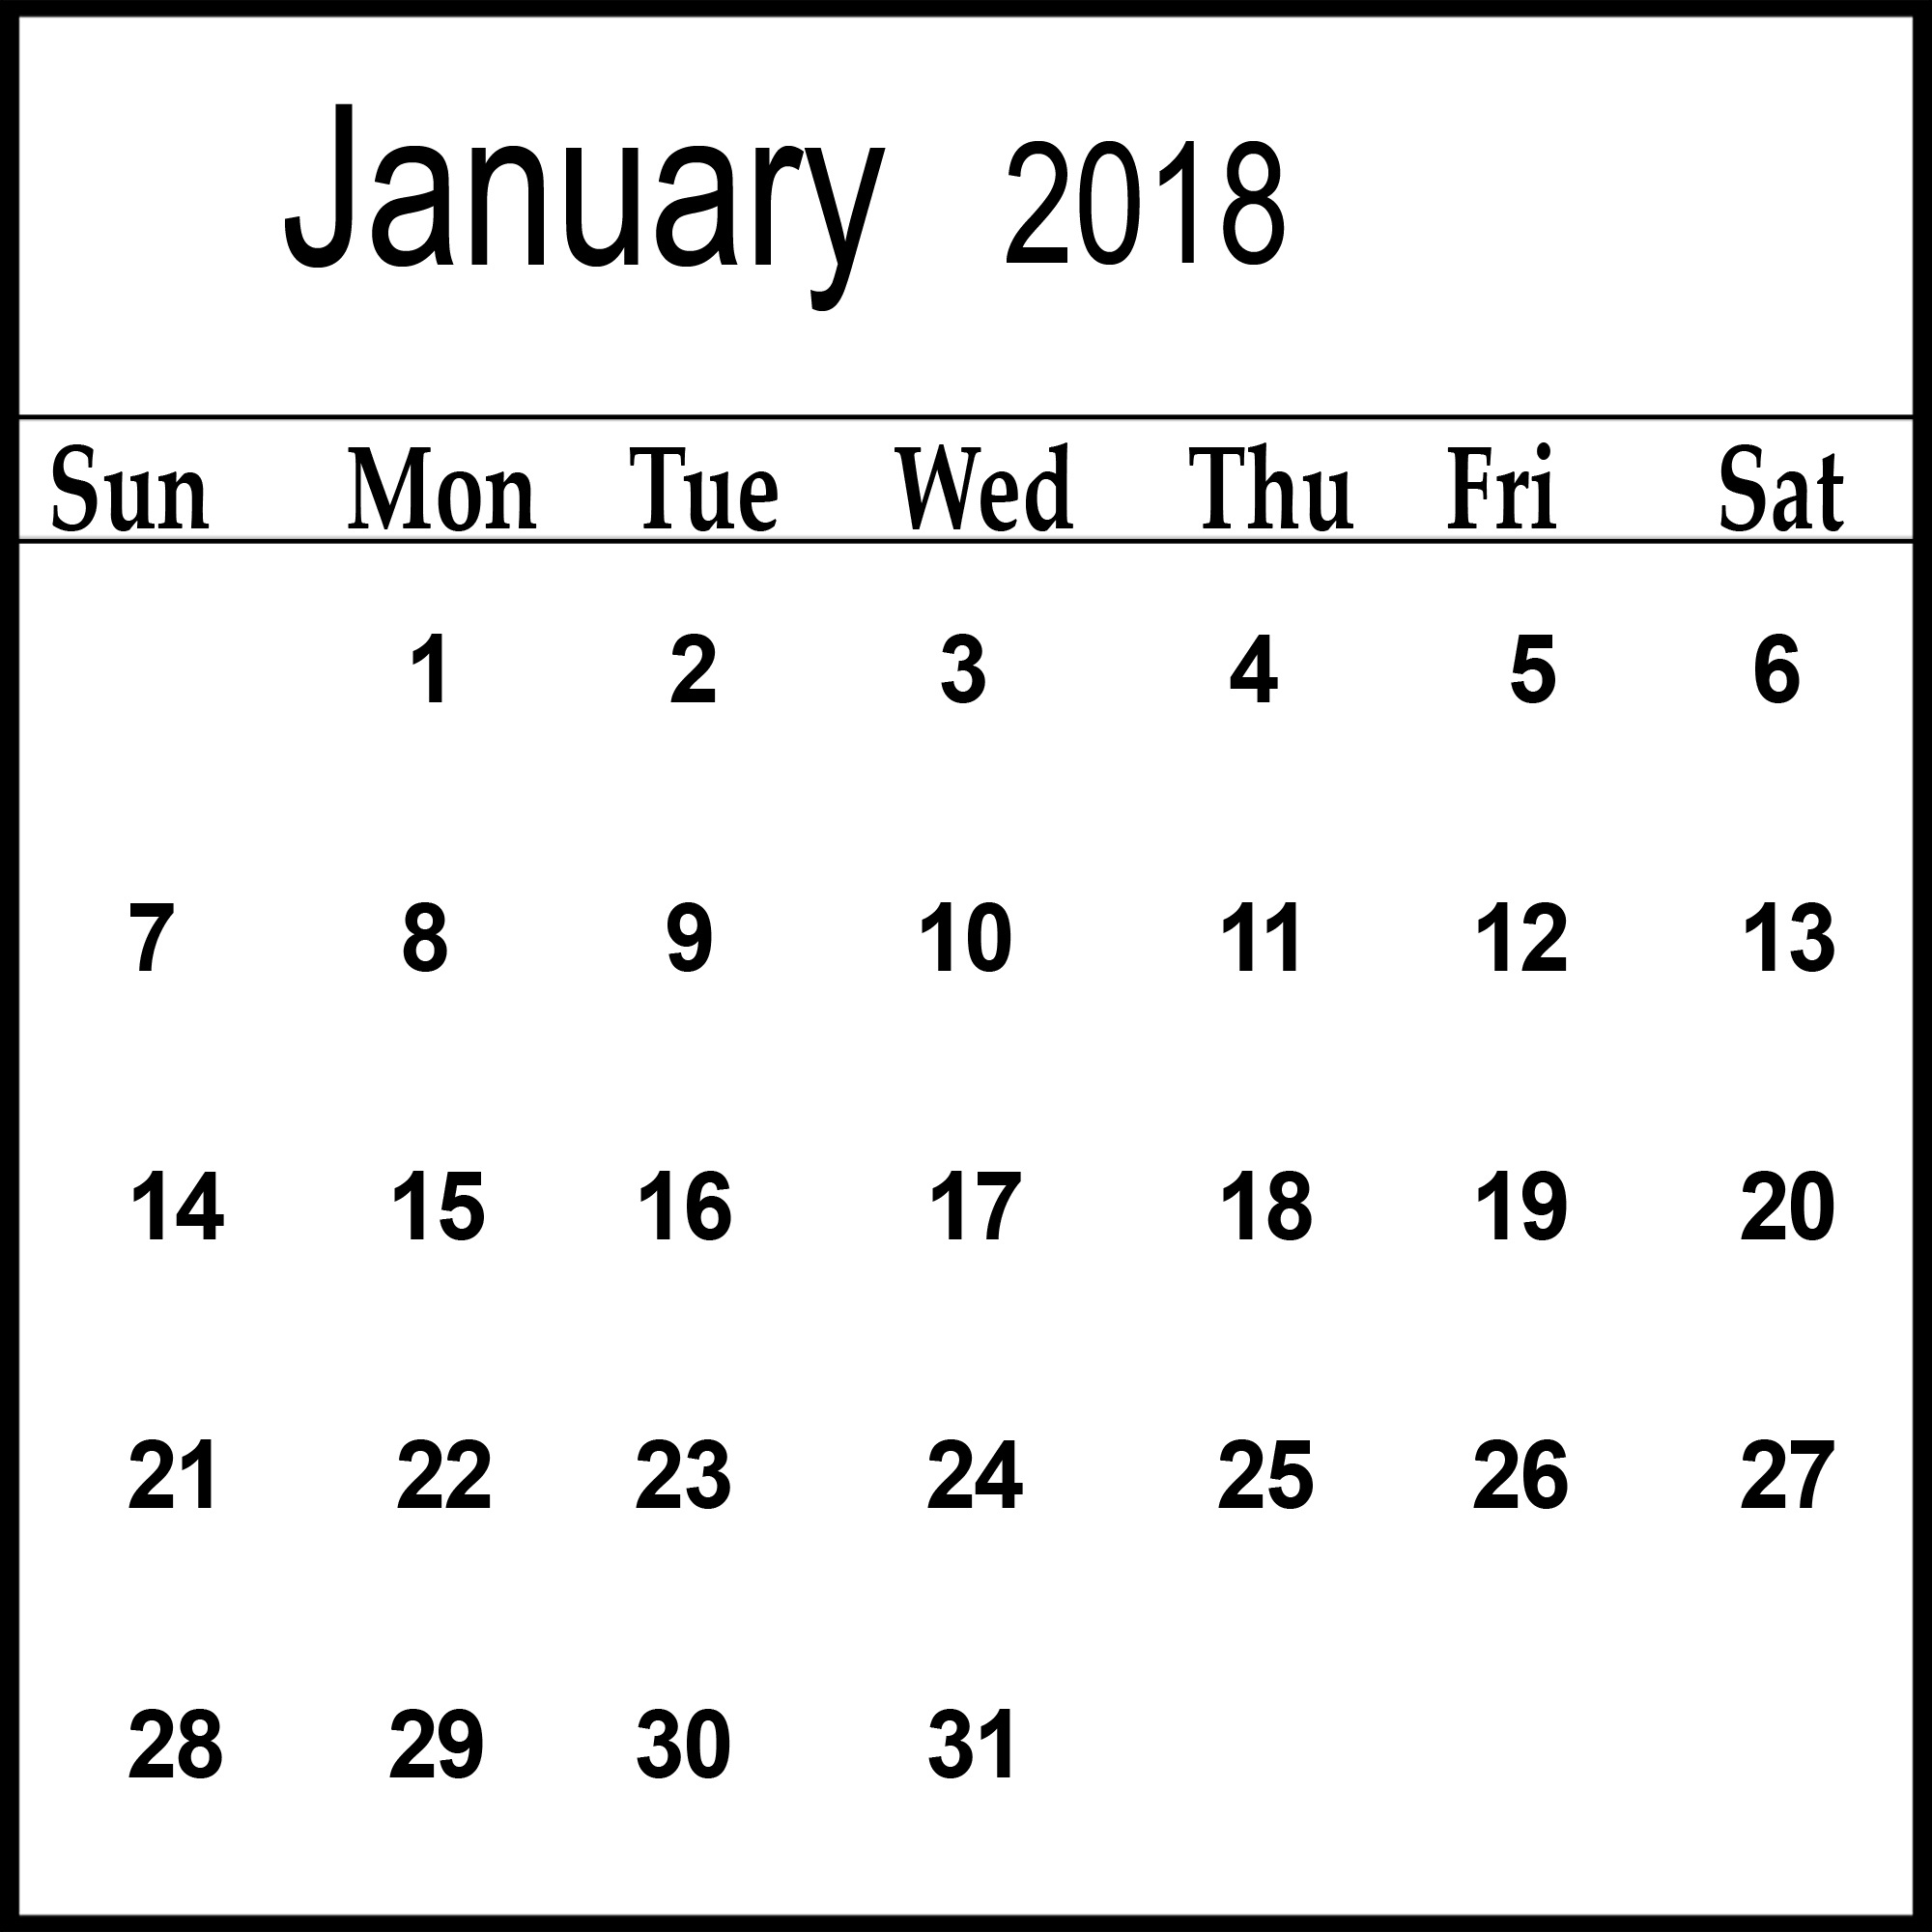 January 2018 Template Calendar Latest HD Pictures 2000x2000